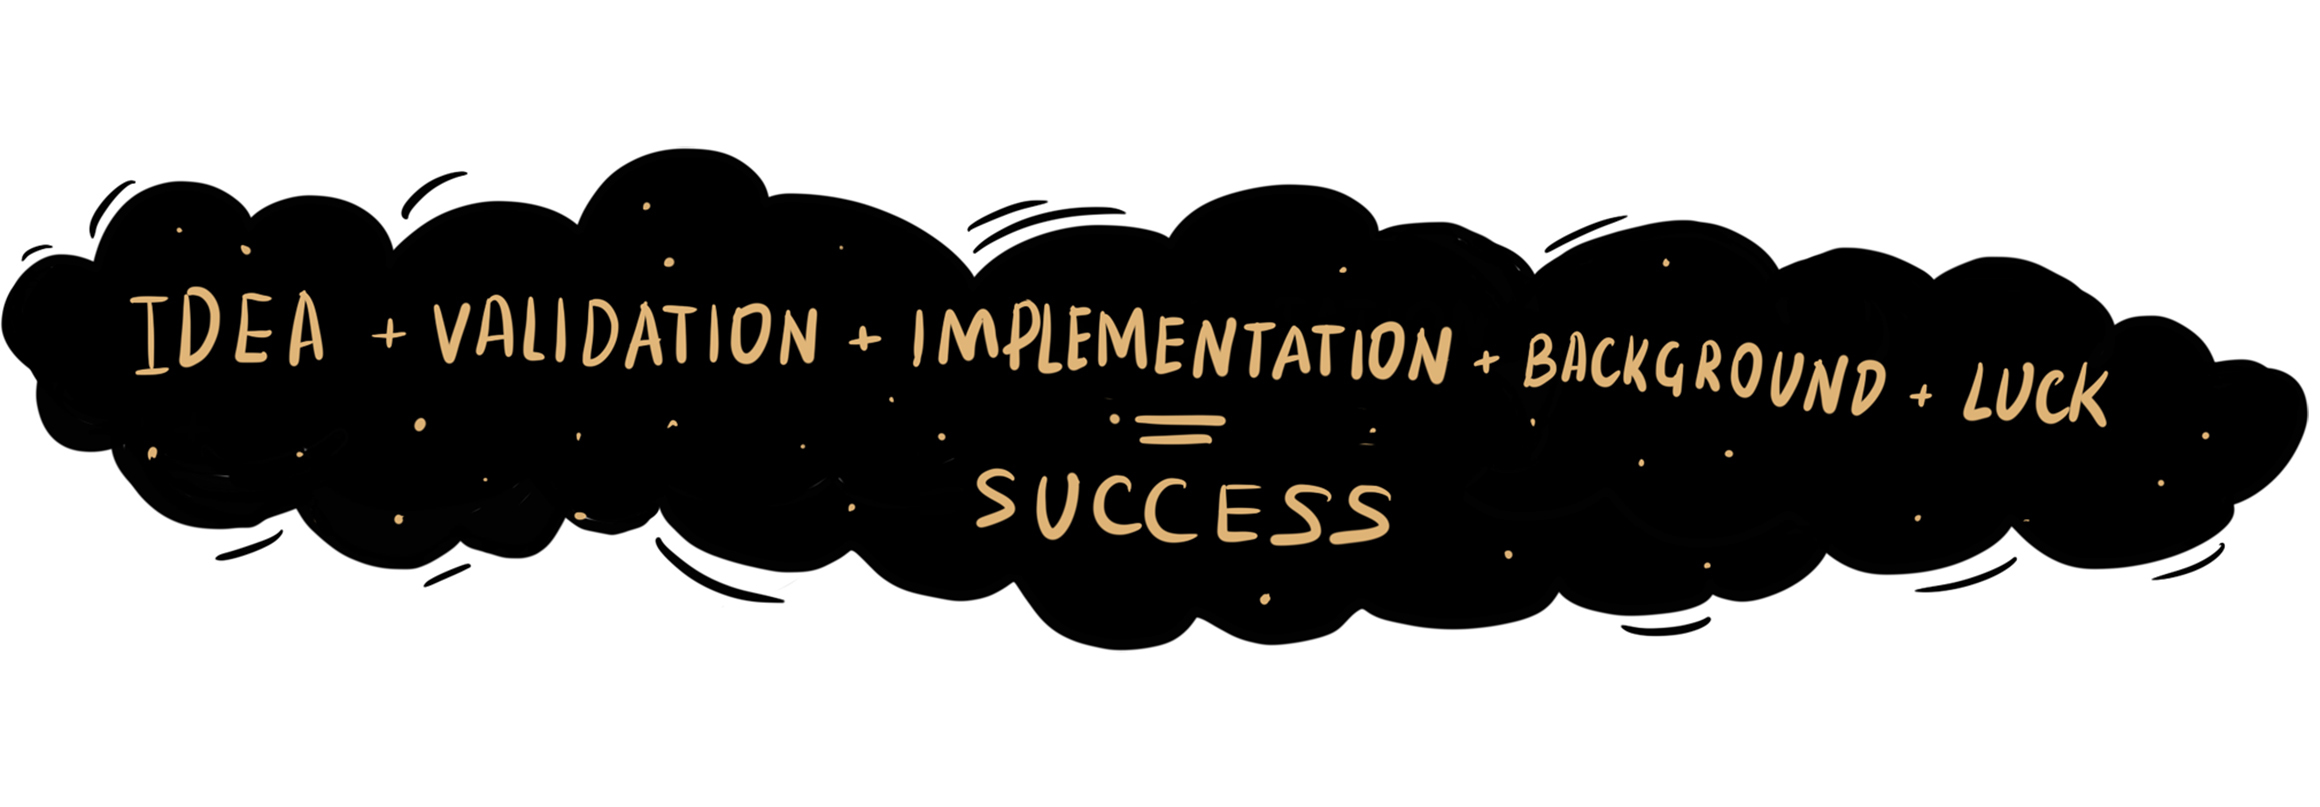 idea+validation+implementation+background+luck=success